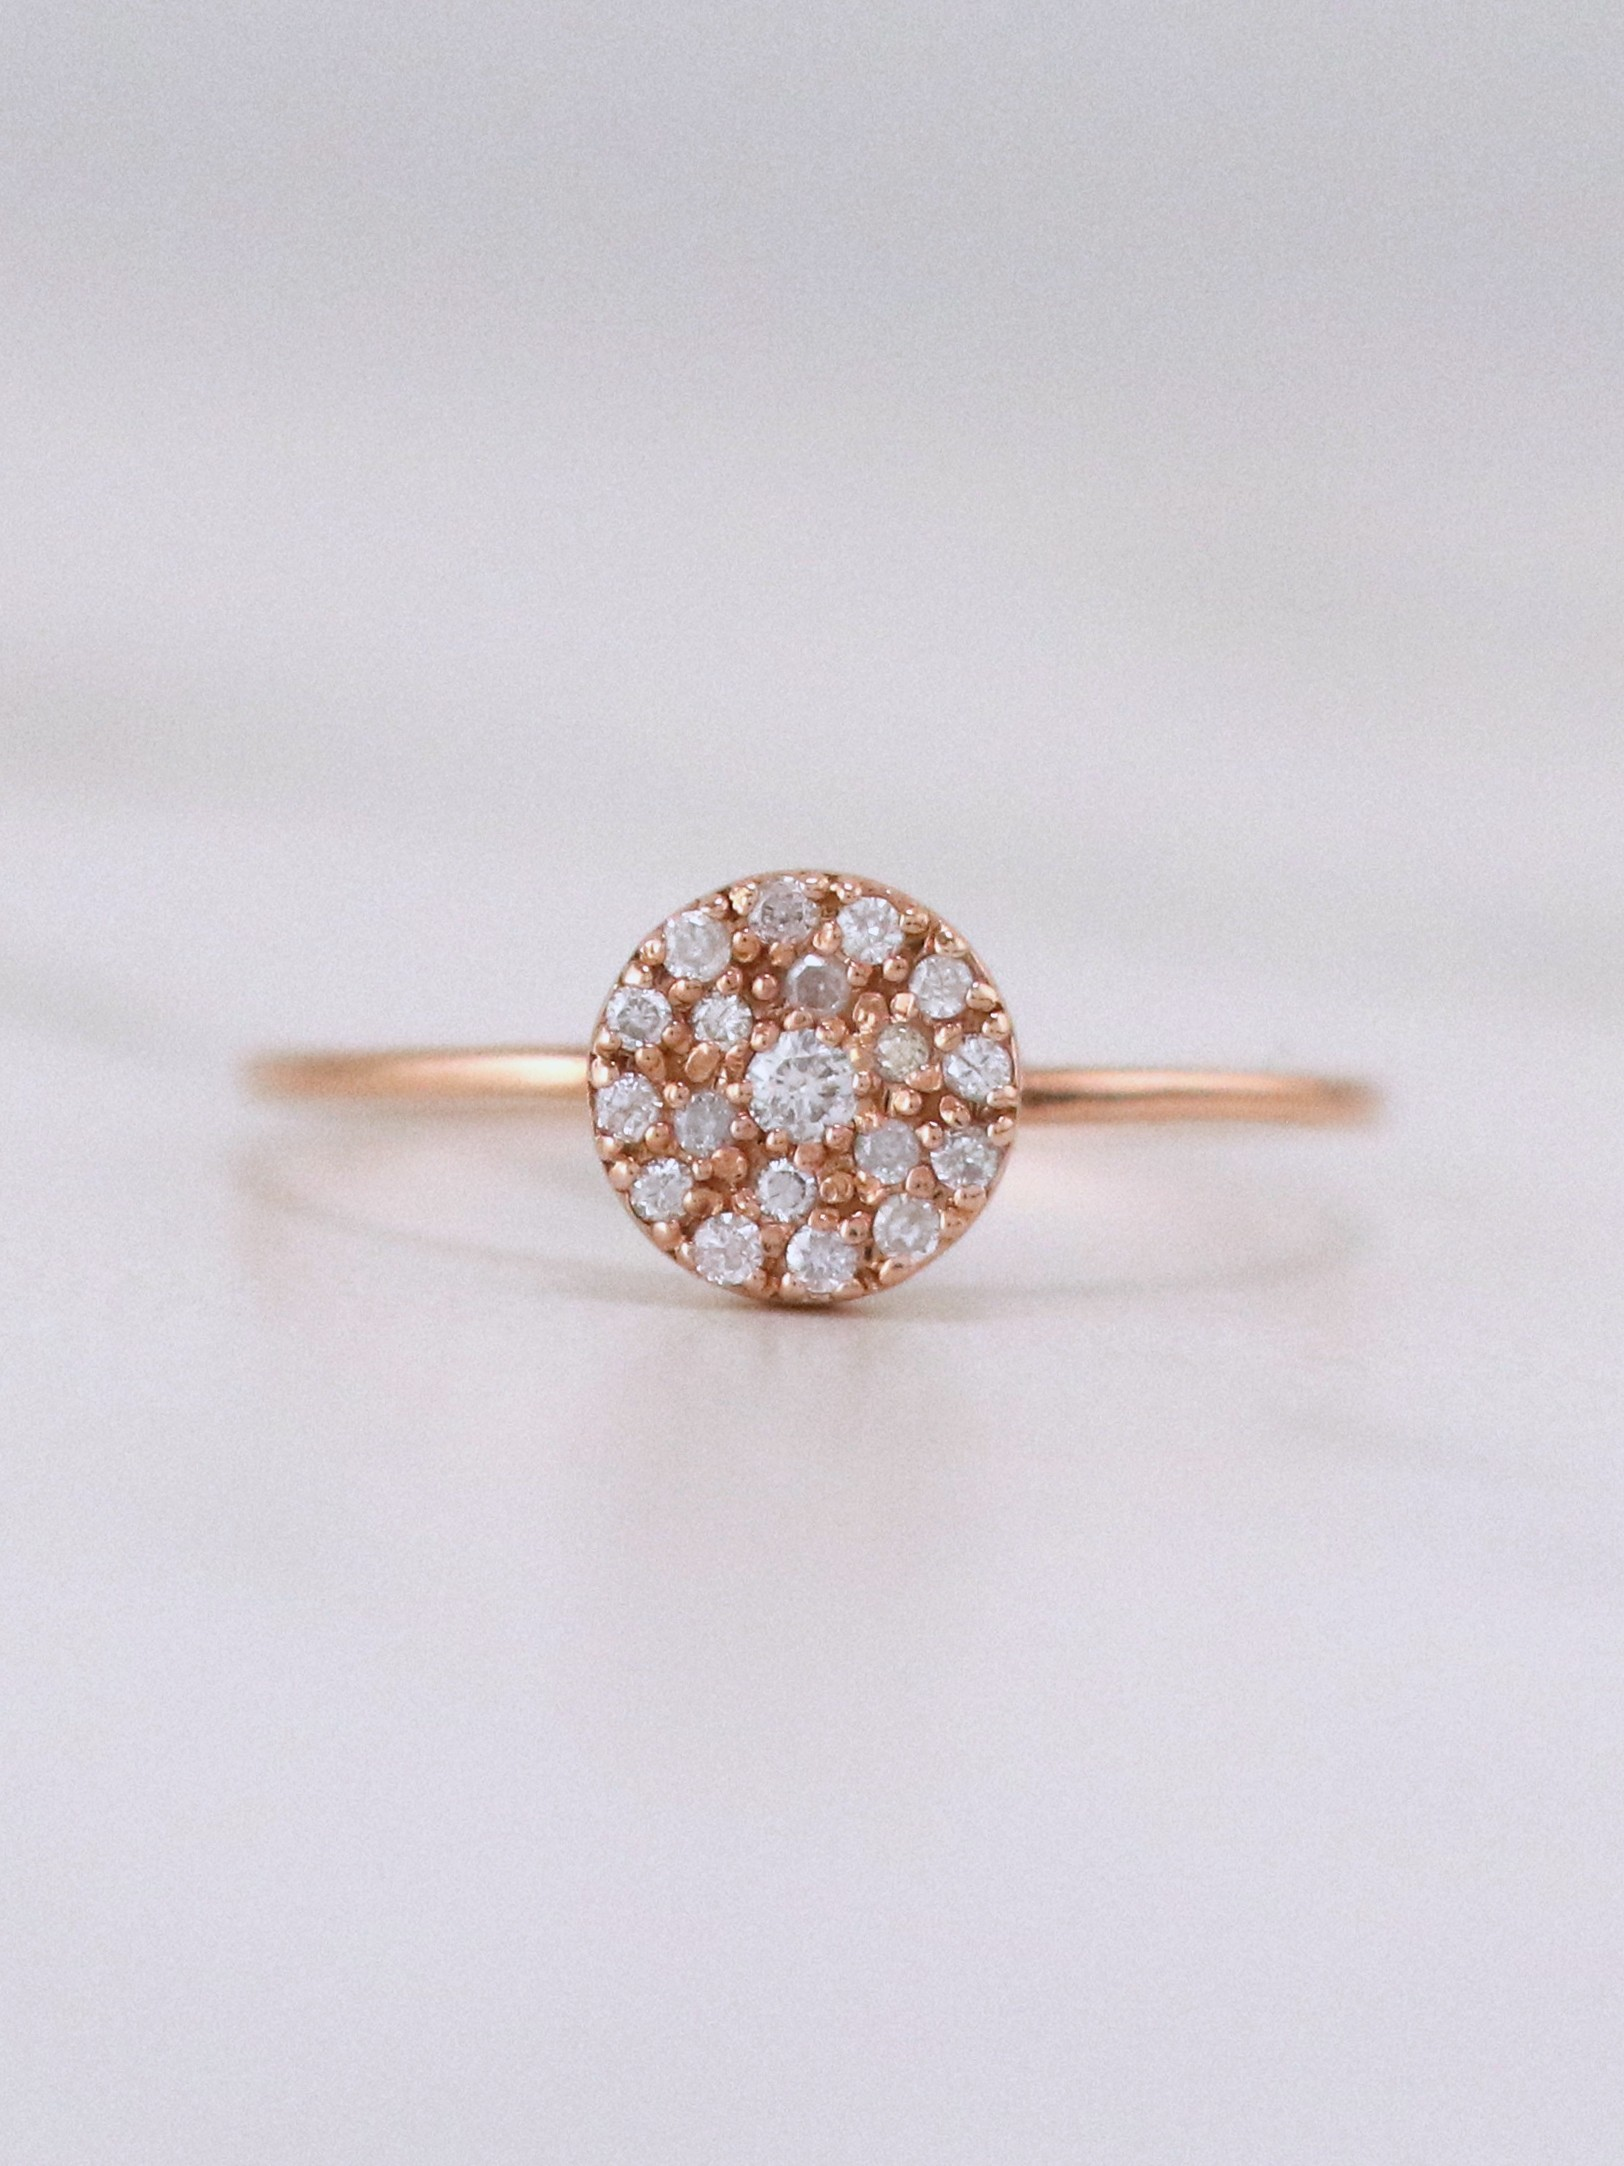 Diamond Cocktail Solid 14k Rg Affordable Engagement Ring